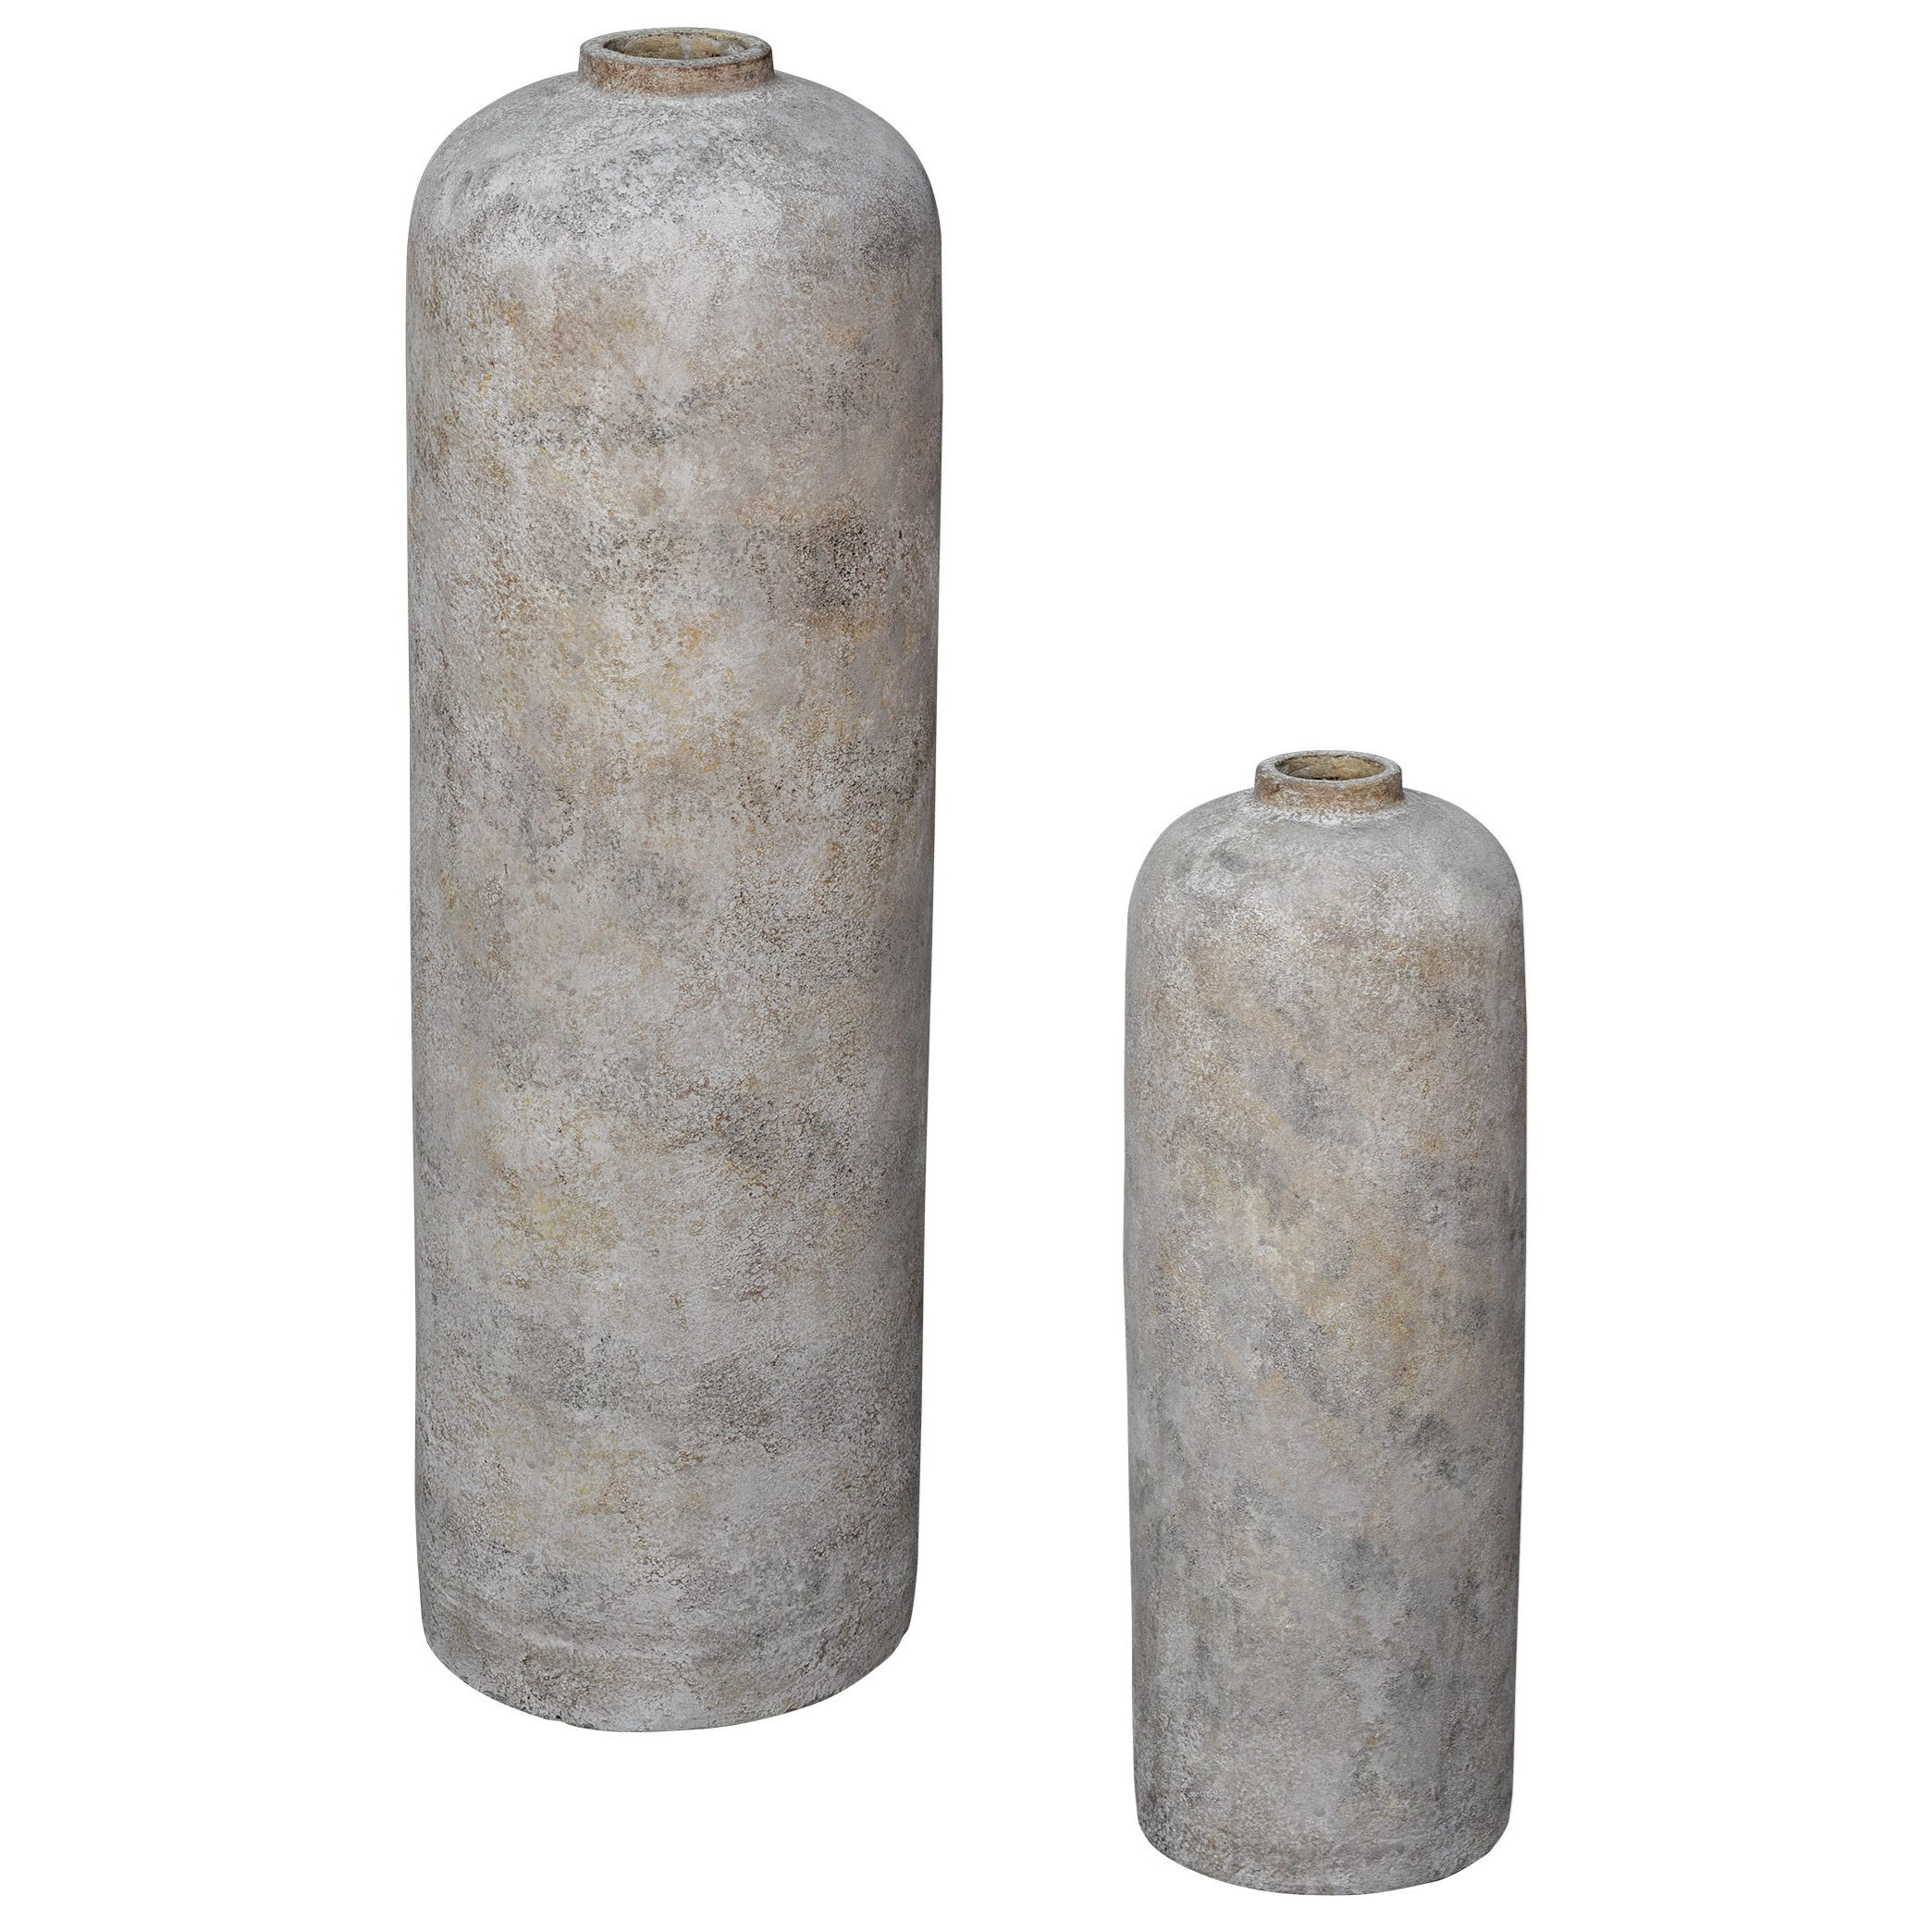 Villa Old World Vases, S/2